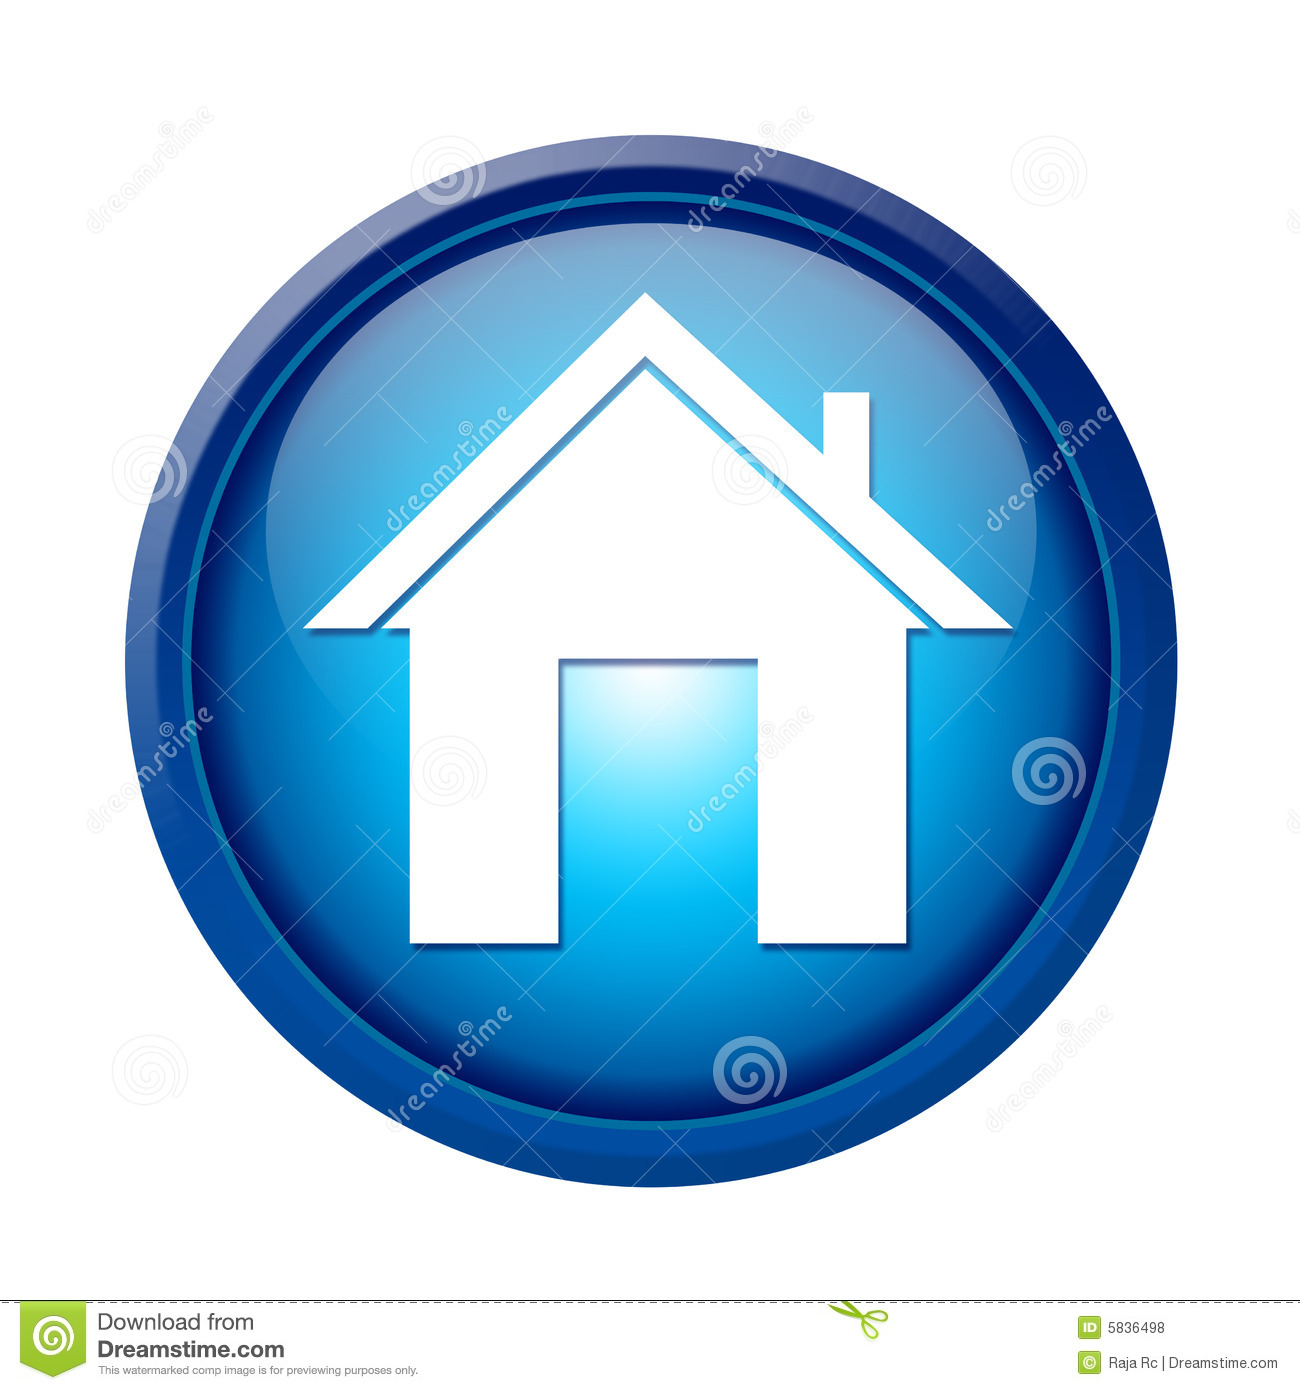 Home button stock illustration illustration of site Website home image